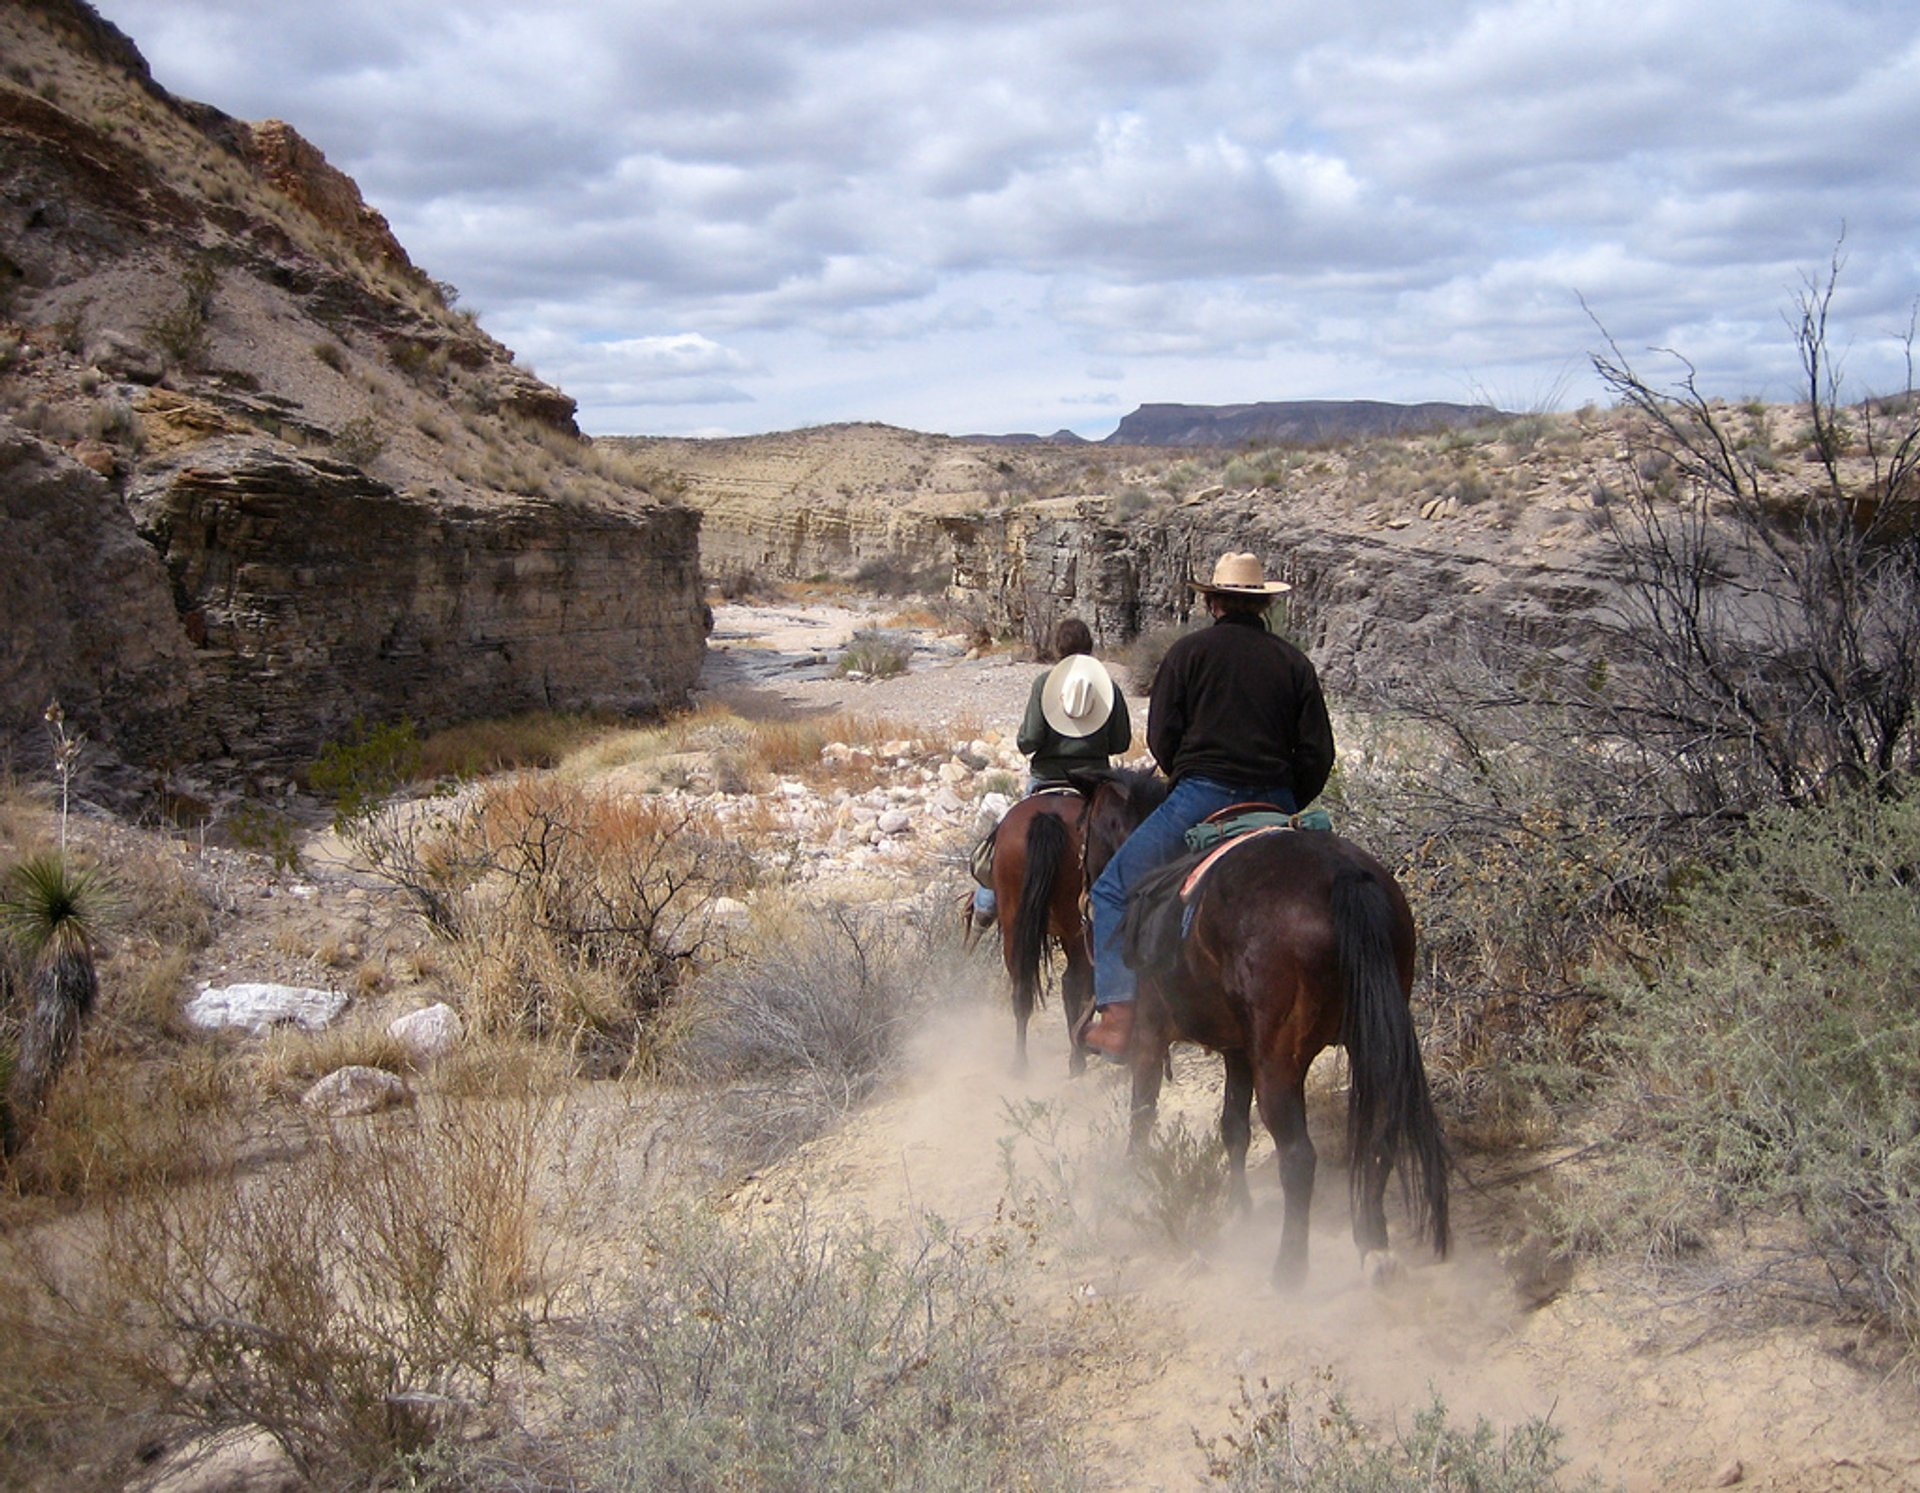 Horseback Riding in Texas 2020 - Best Time